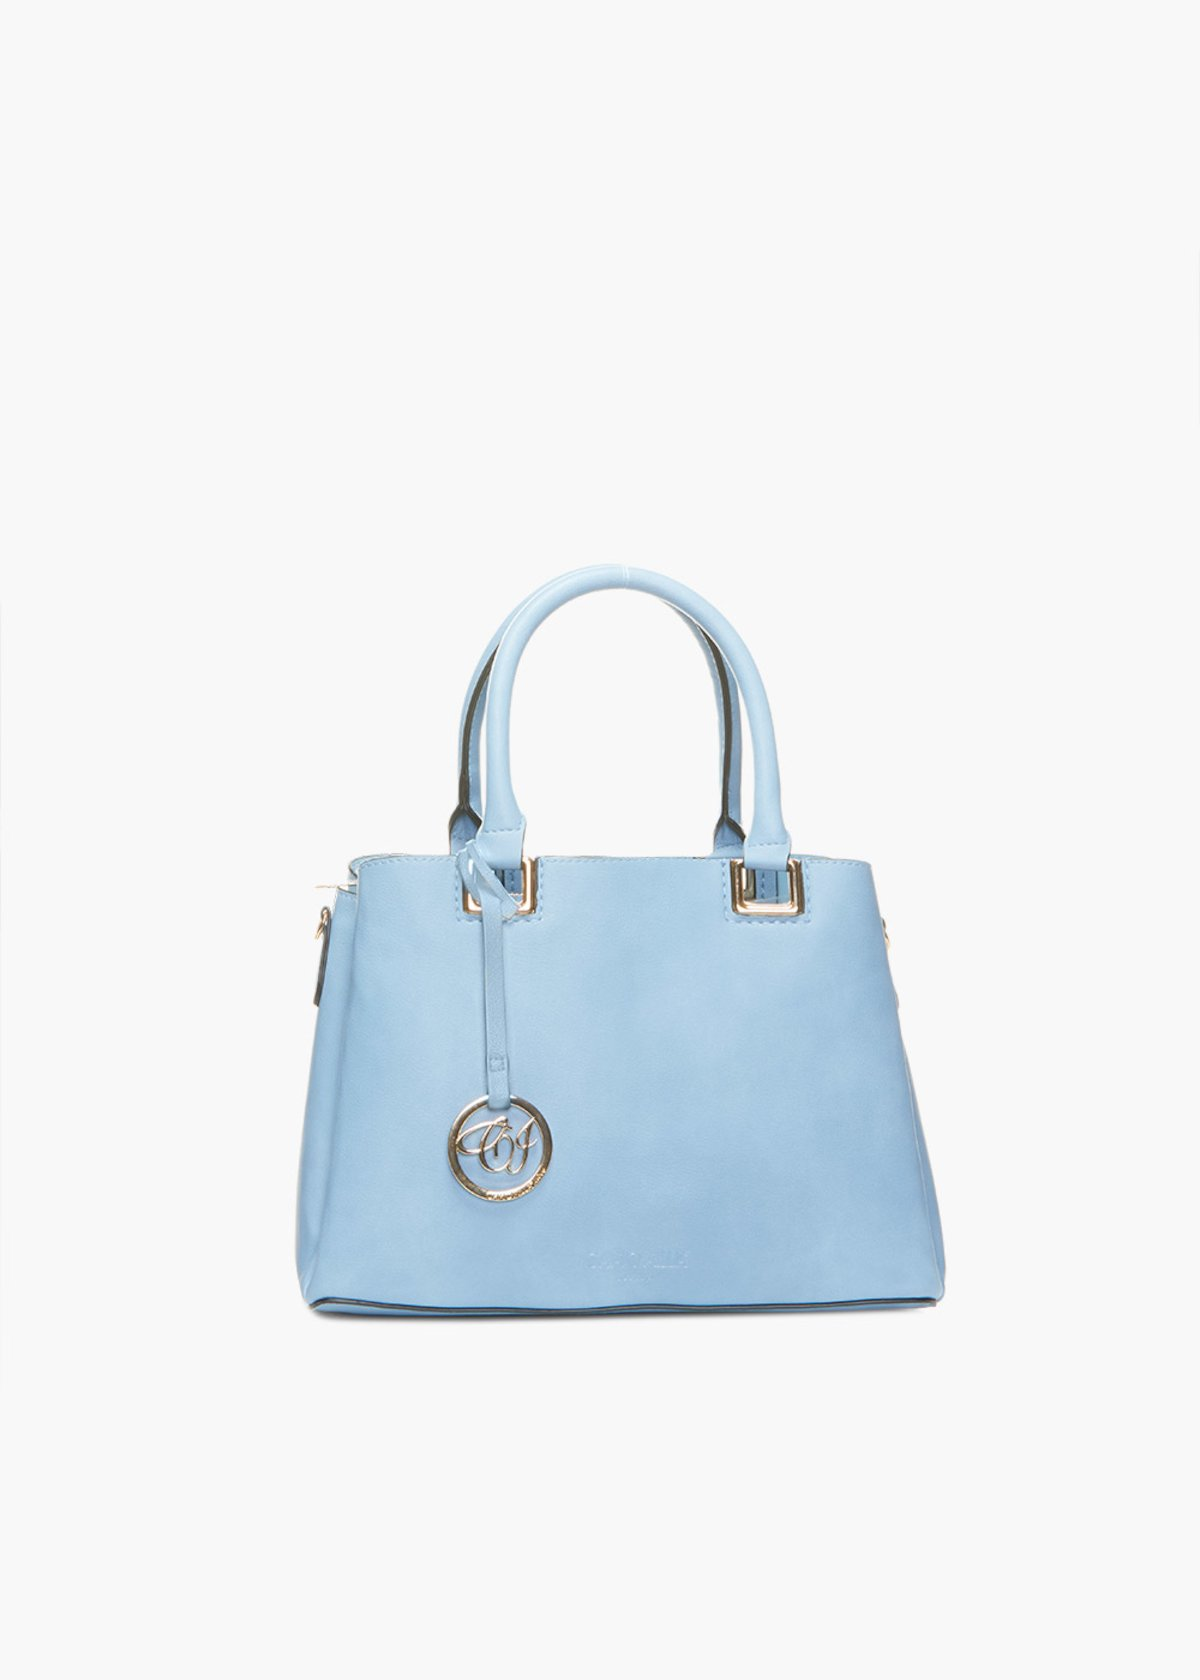 Brook faux leather handles bag with shoulder strap - Shark - Woman